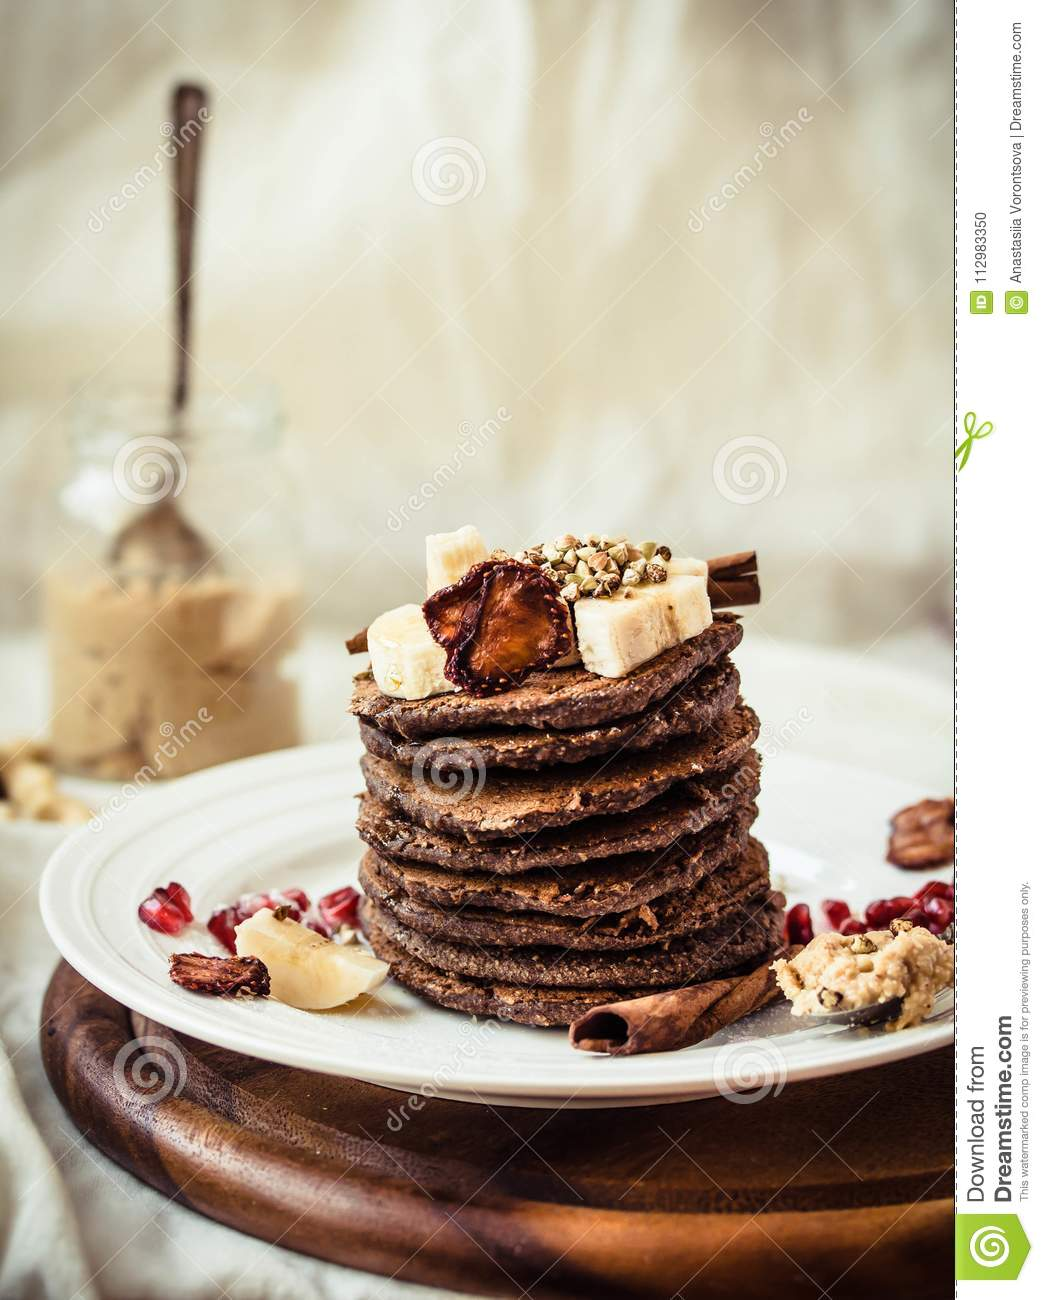 Chocolate pancakes with banana, peanut butter, cinnamon and maple syrup. A healthy breakfast for children.